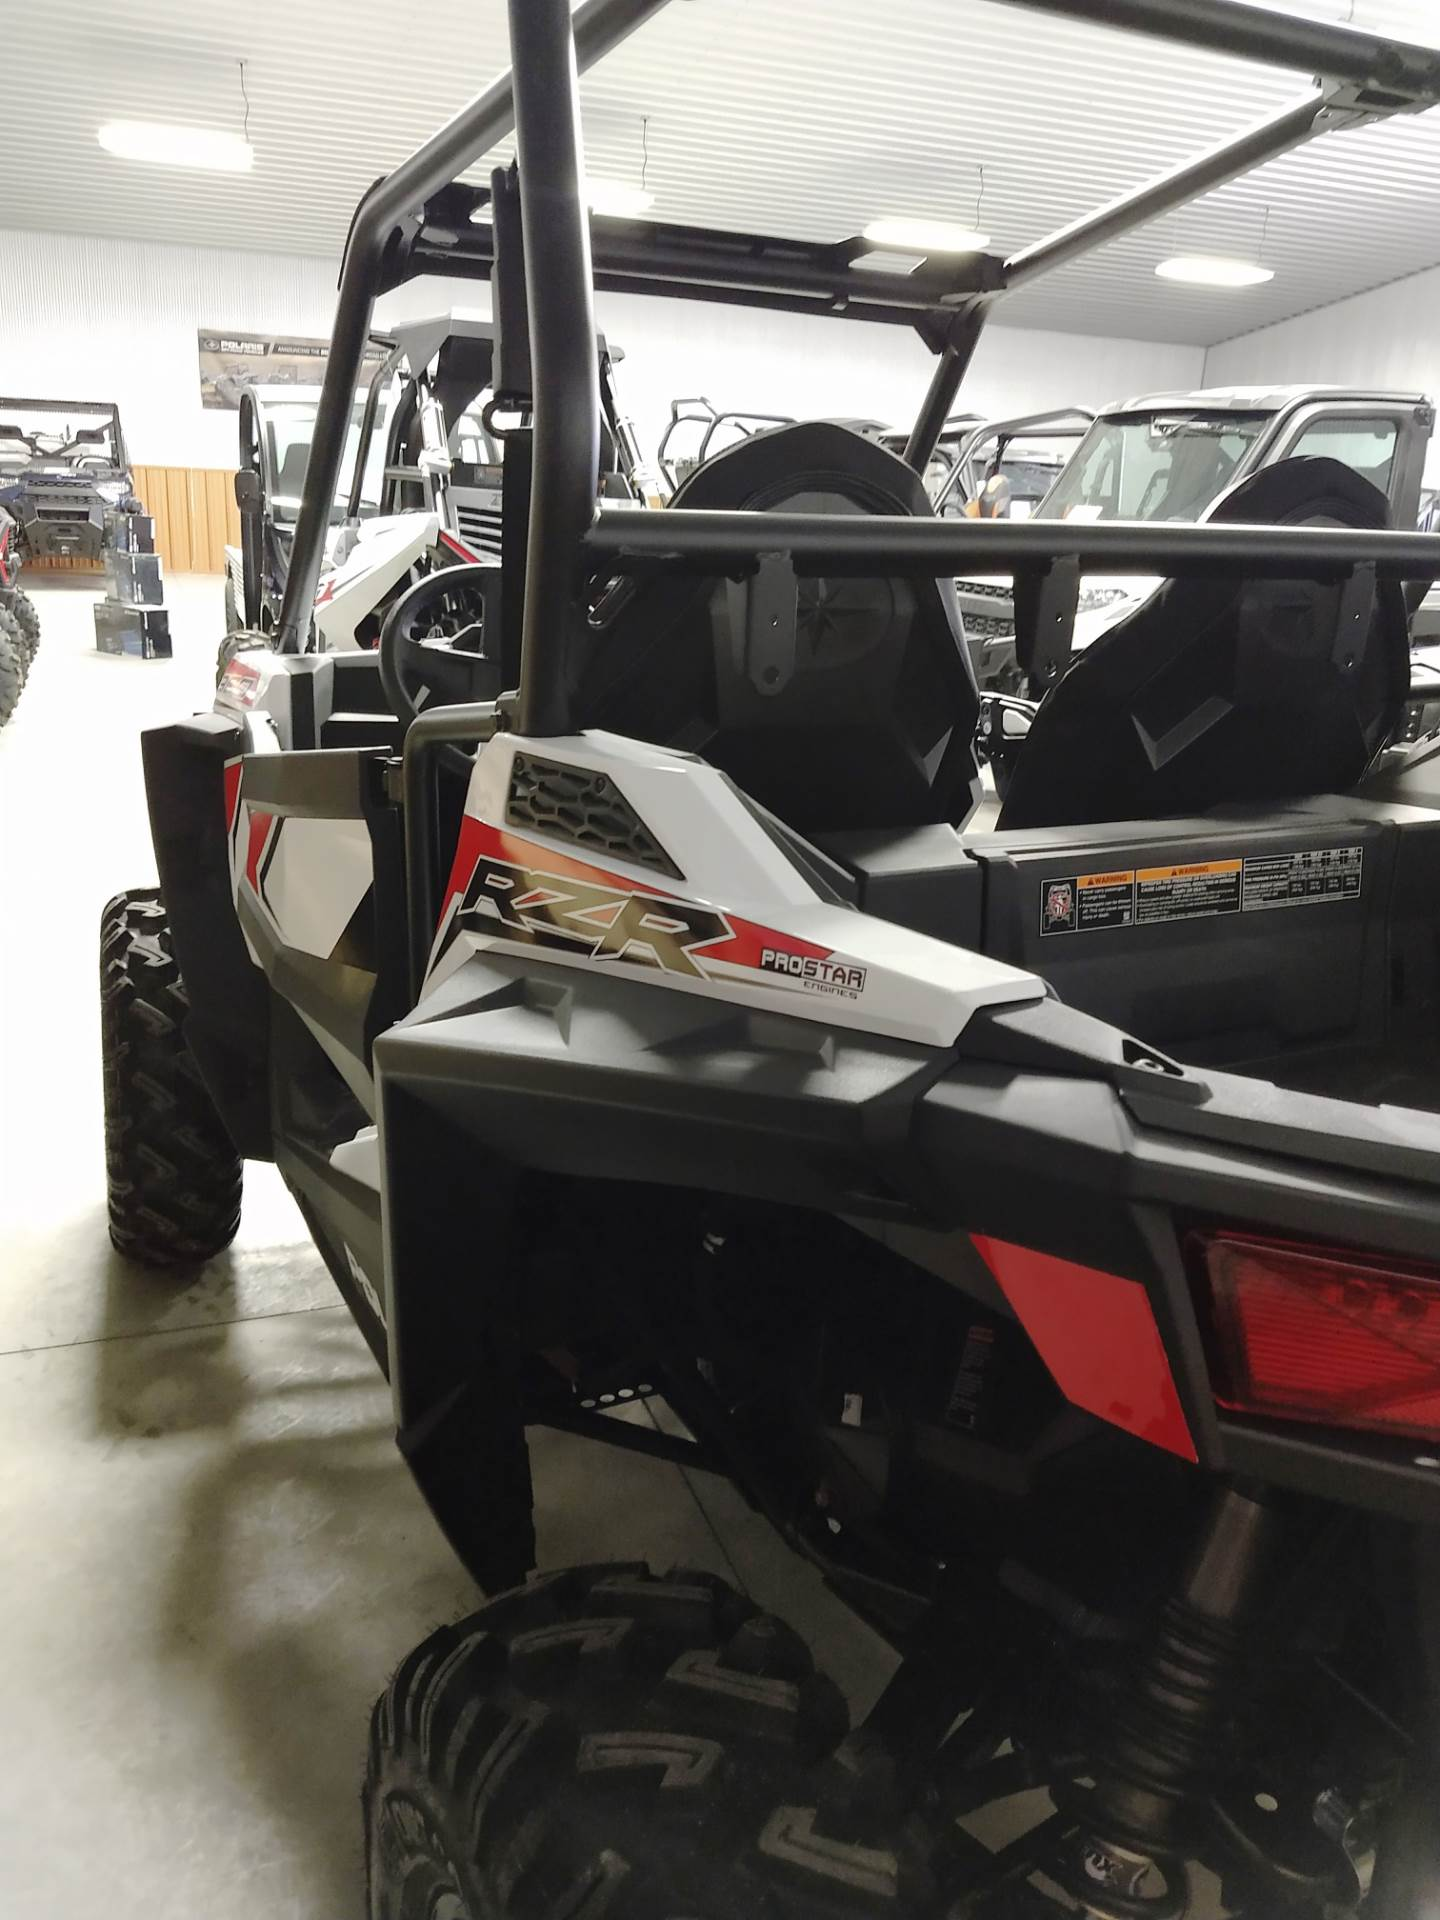 2019 Polaris RZR S 900 in Ottumwa, Iowa - Photo 8